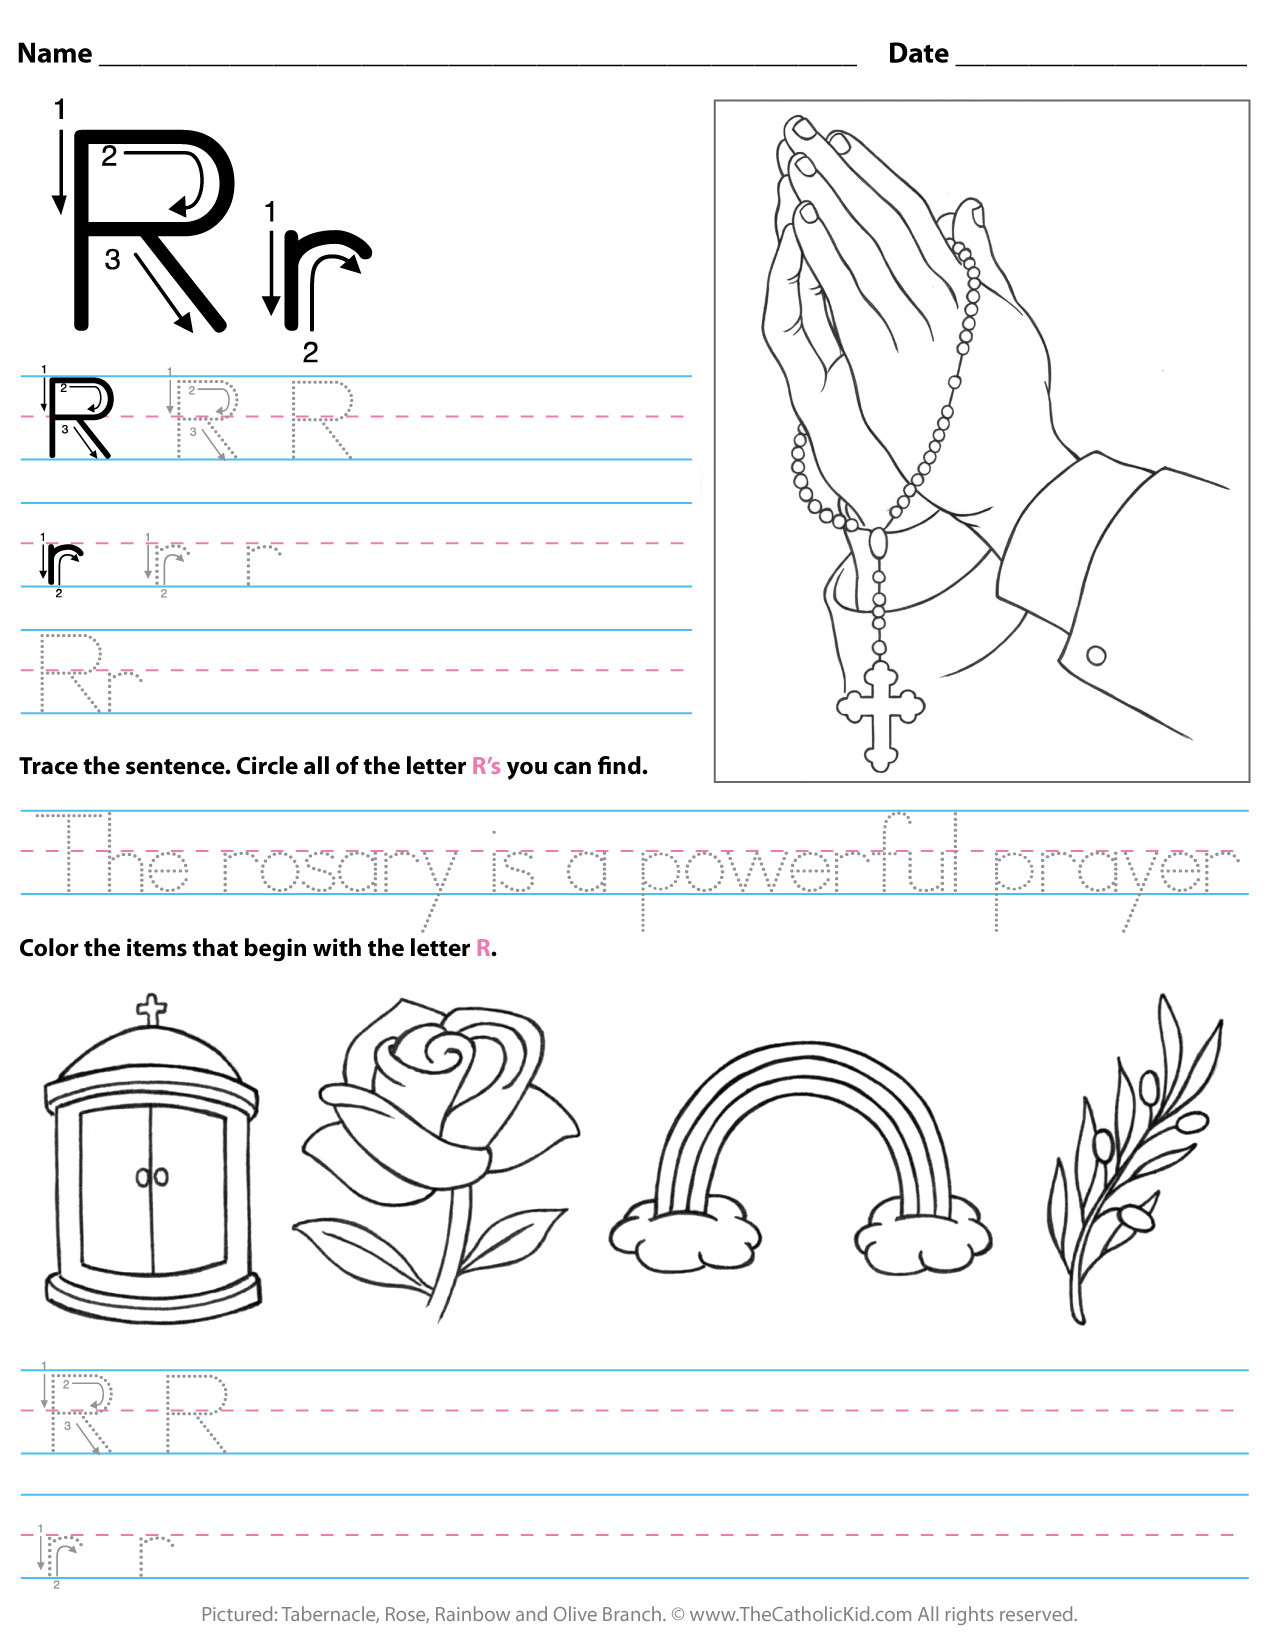 Rainbow Worksheets Preschool Catholic Alphabet Letter R Worksheet Preschool Kindergarten